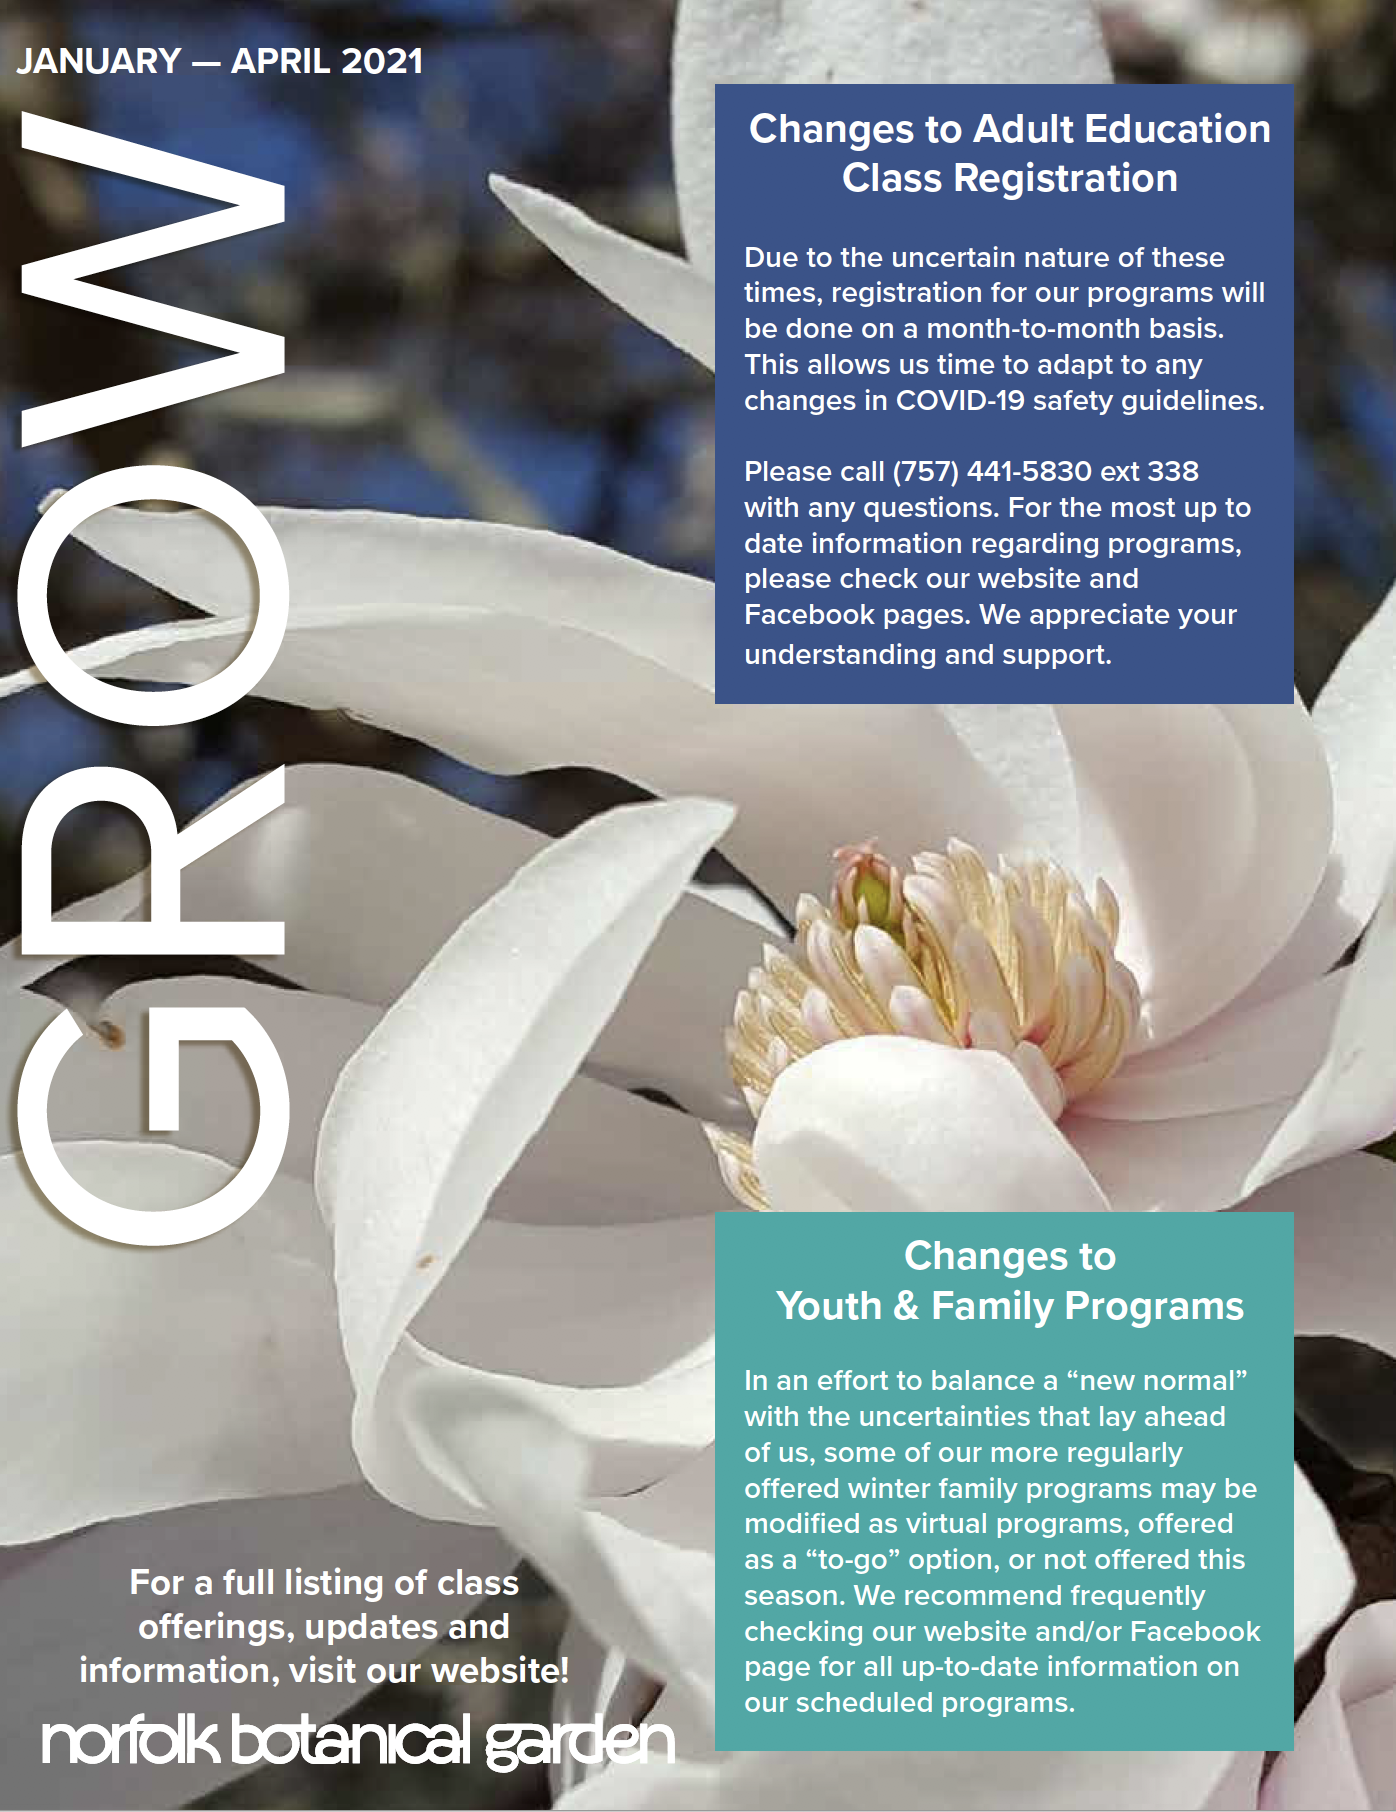 Image of the front cover of GROW, the NBG course catalog for the months of January through April, 2021.